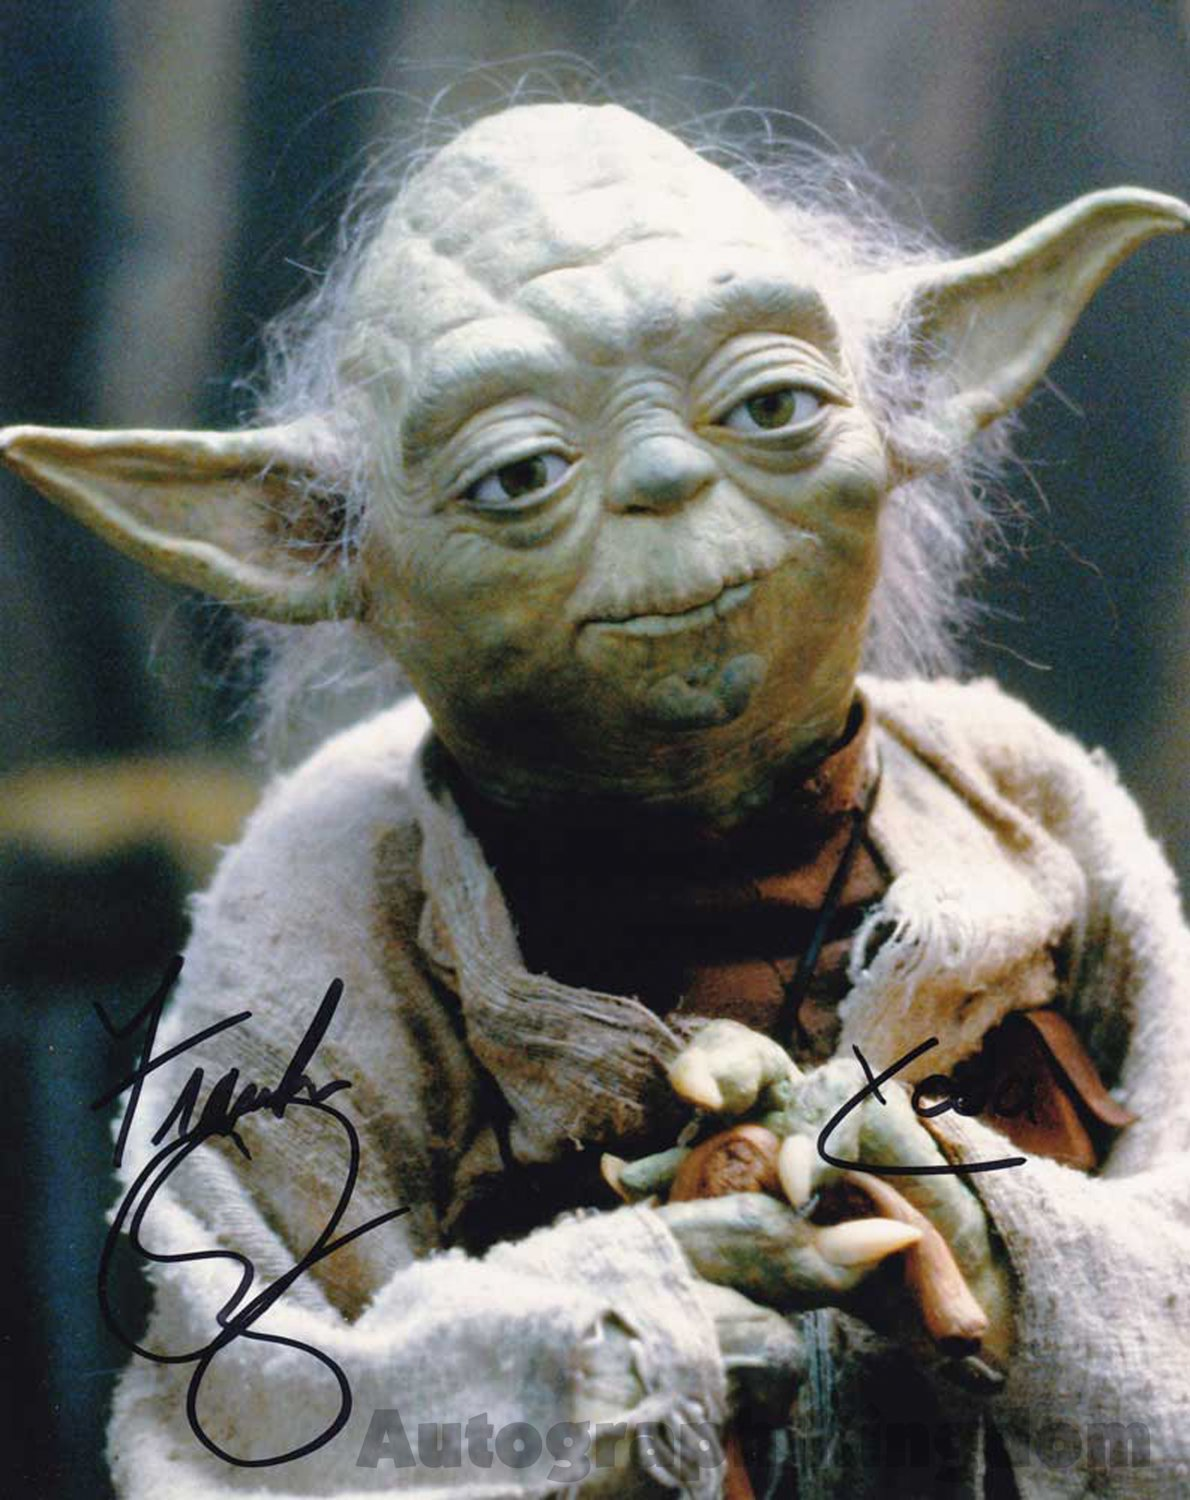 """Frank Oz (Yoda: Star Wars) 8 x 10"""" Autographed / Signed Photo (Reprint:1488) FREE SHIPPING"""